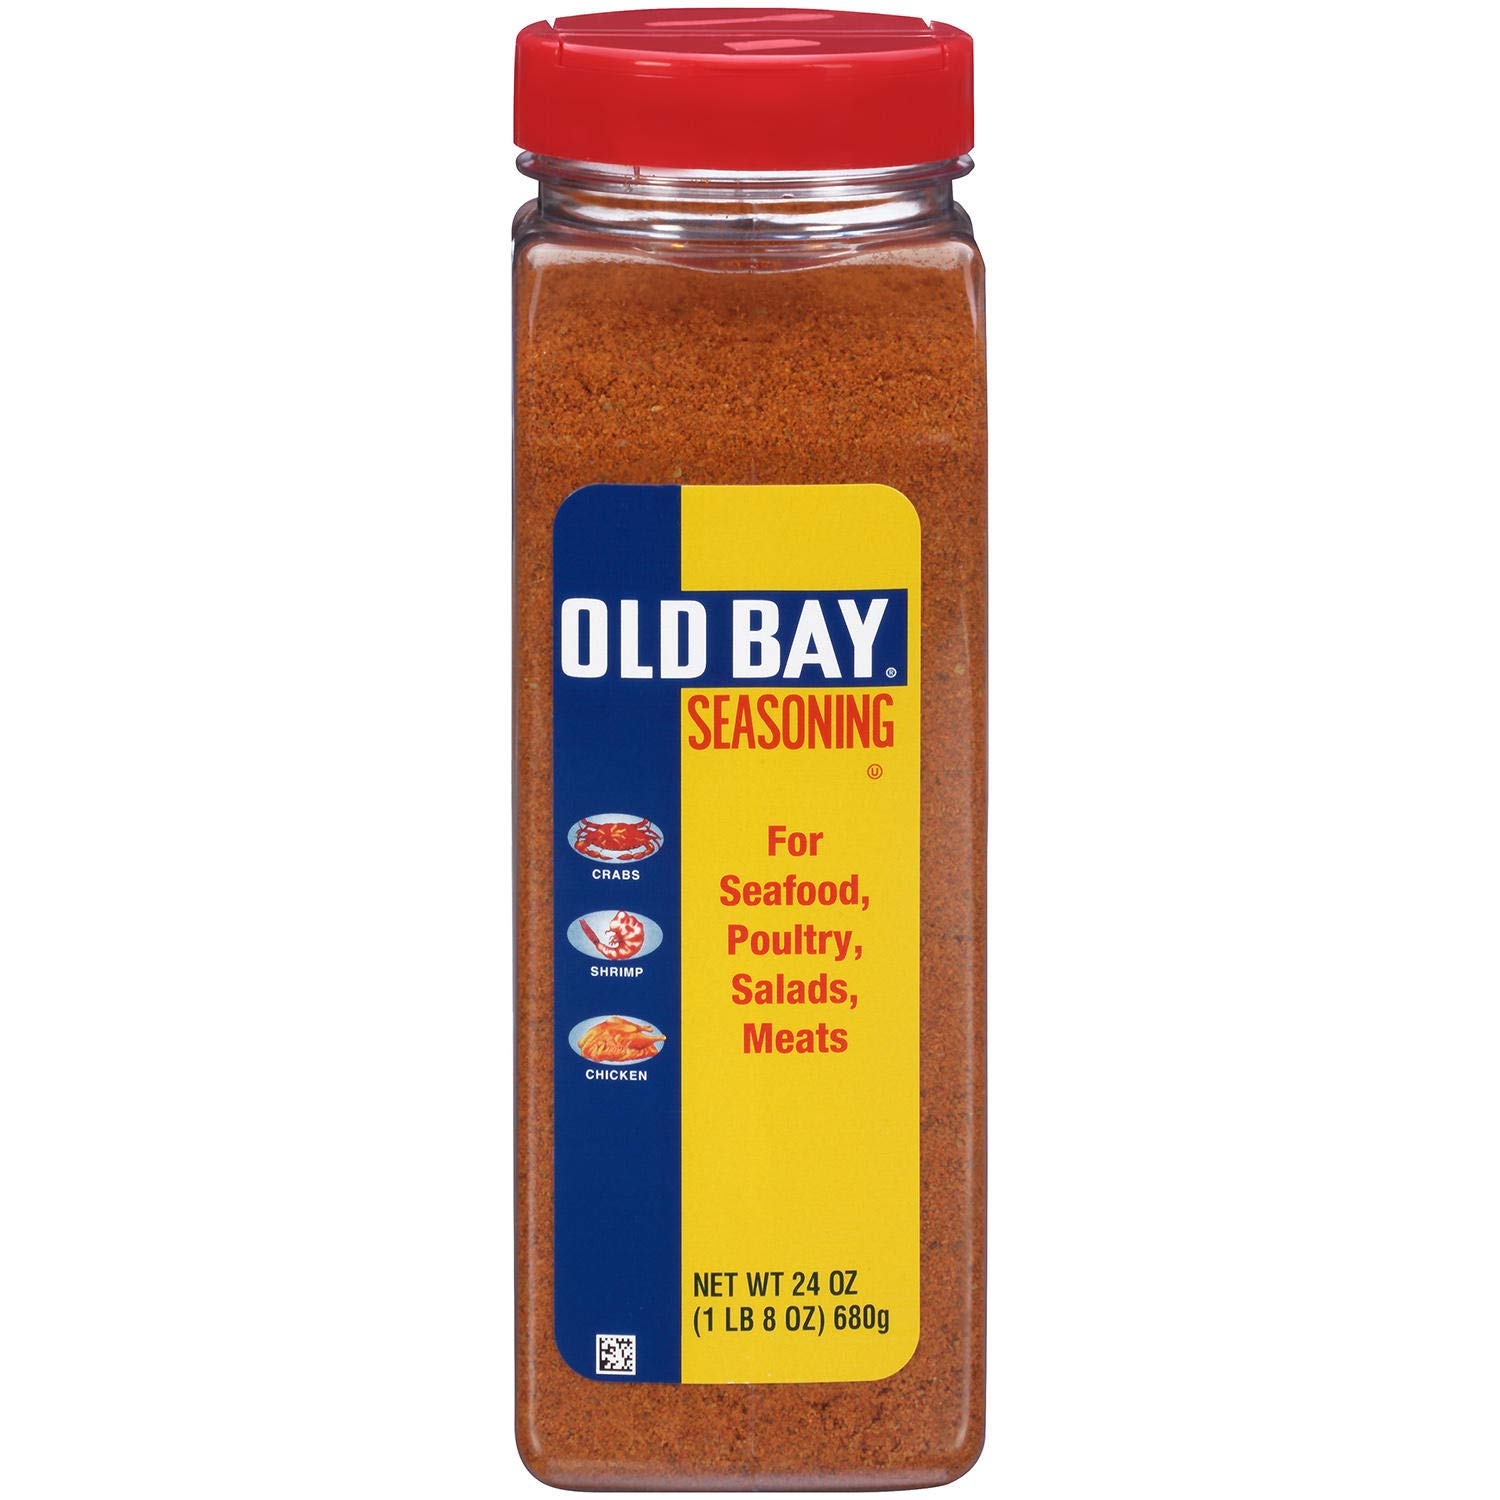 Old Bay Seasoning 24 oz (Pack of 2)